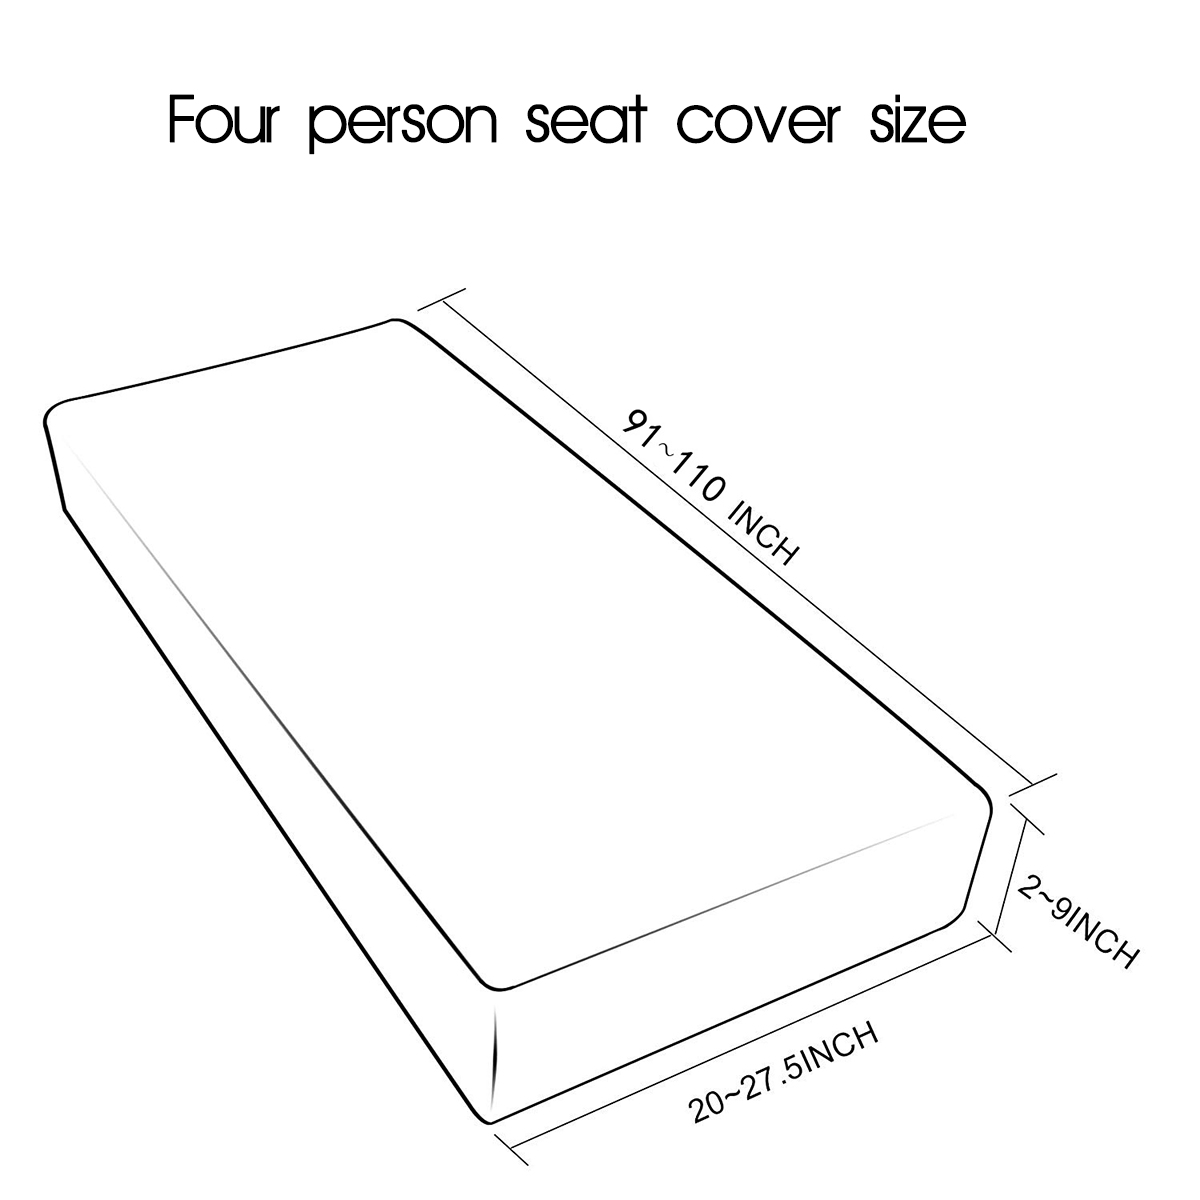 1 4 Seats Waterproof Sofa Seat Cushion Cover Couch